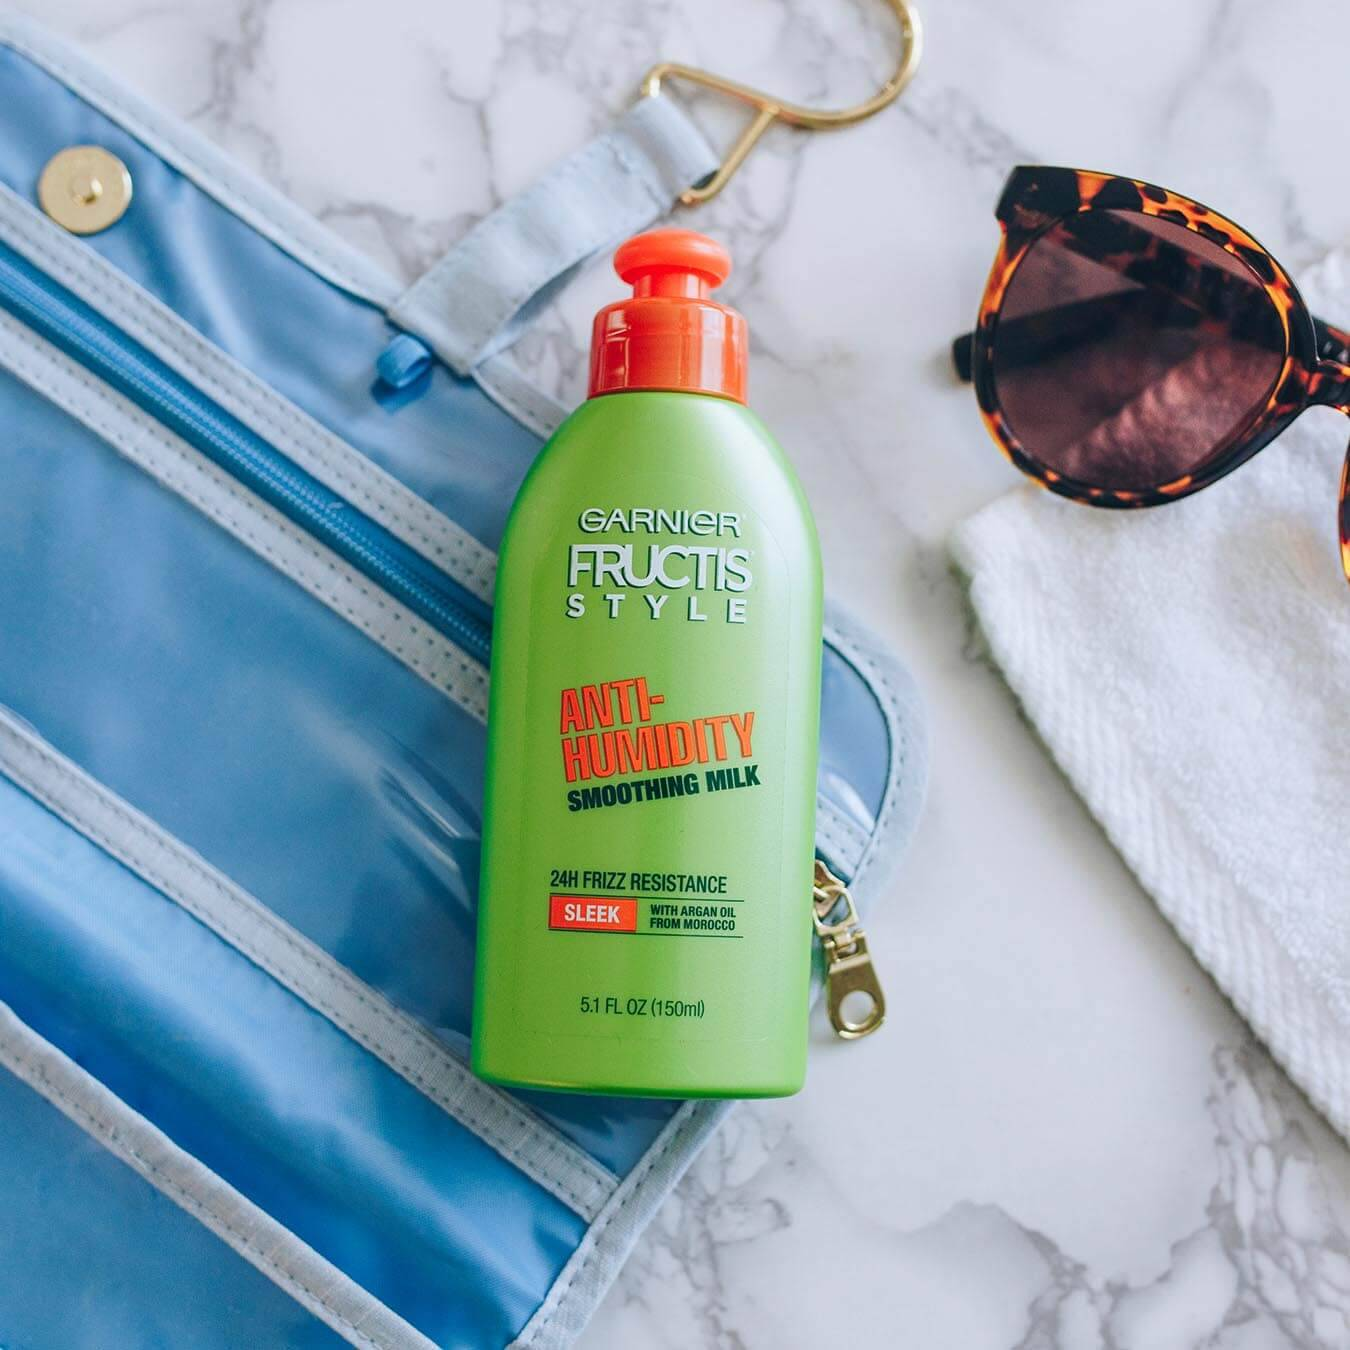 Garnier Fructis Style Anti-Humidity Smoothing Milk on a blue fold-out travel kit on white marble next to leopard-print sunglasses on a white wash cloth.